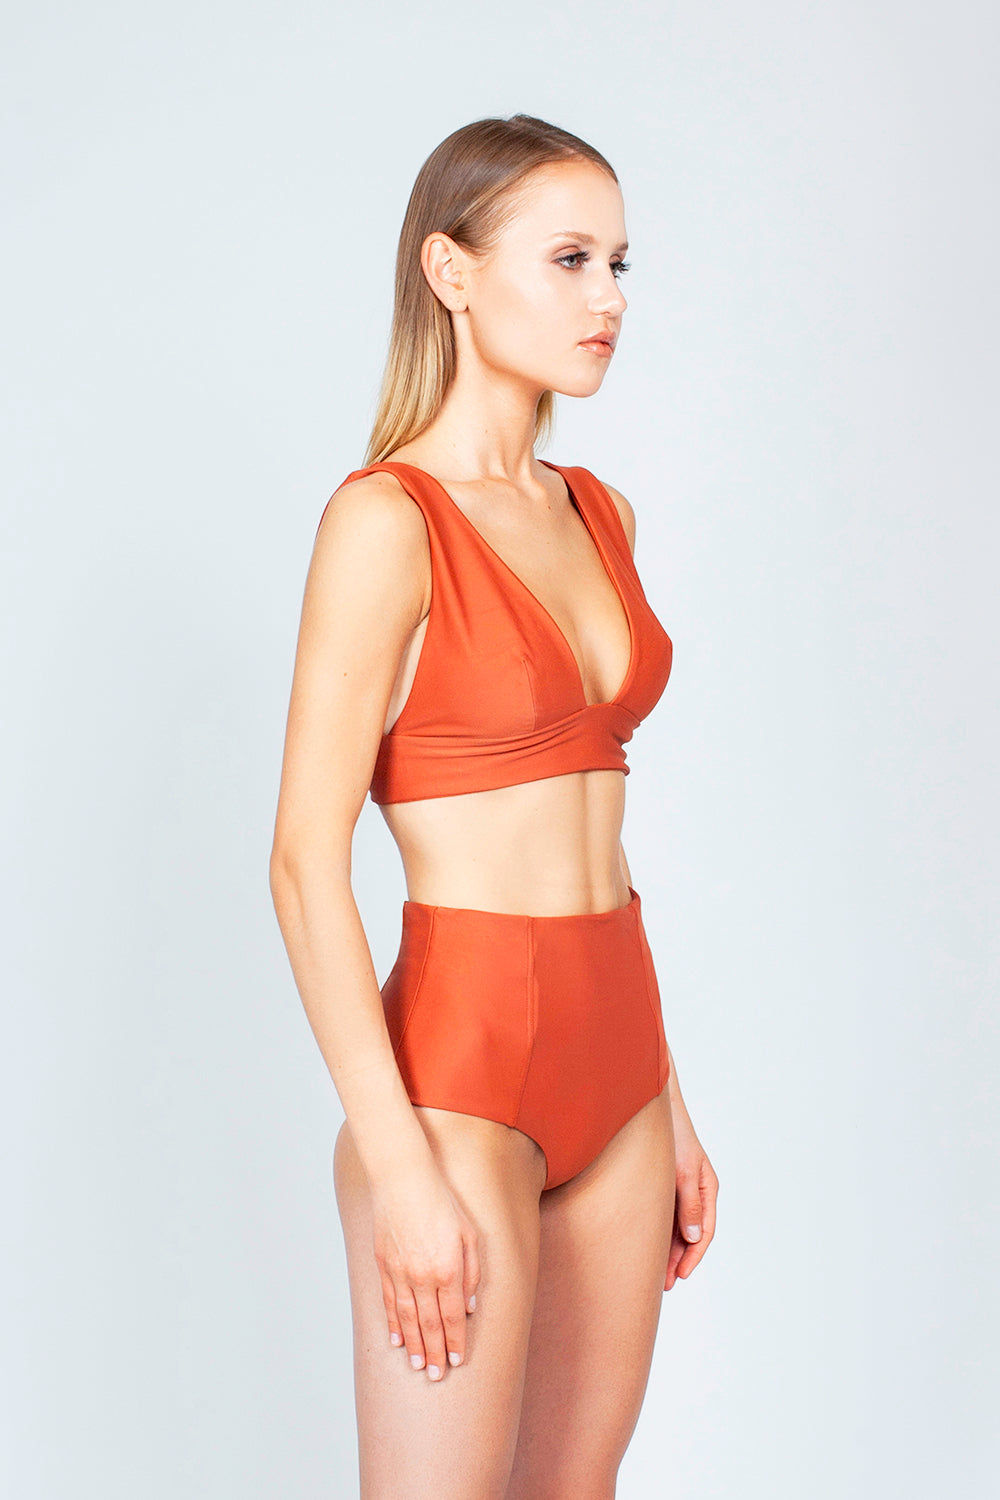 THE ONES WHO Dive Long Triangle Bikini Top - Copper Orange Bikini Top   Copper Orange  The Ones Who Dive Long Triangle Bikini Top - Copper Orange Long triangle top  V neckline  Thick bra band  V Back  Pull over  Made in LA  Fabric: 80% Nylon 20% Elastane Side View